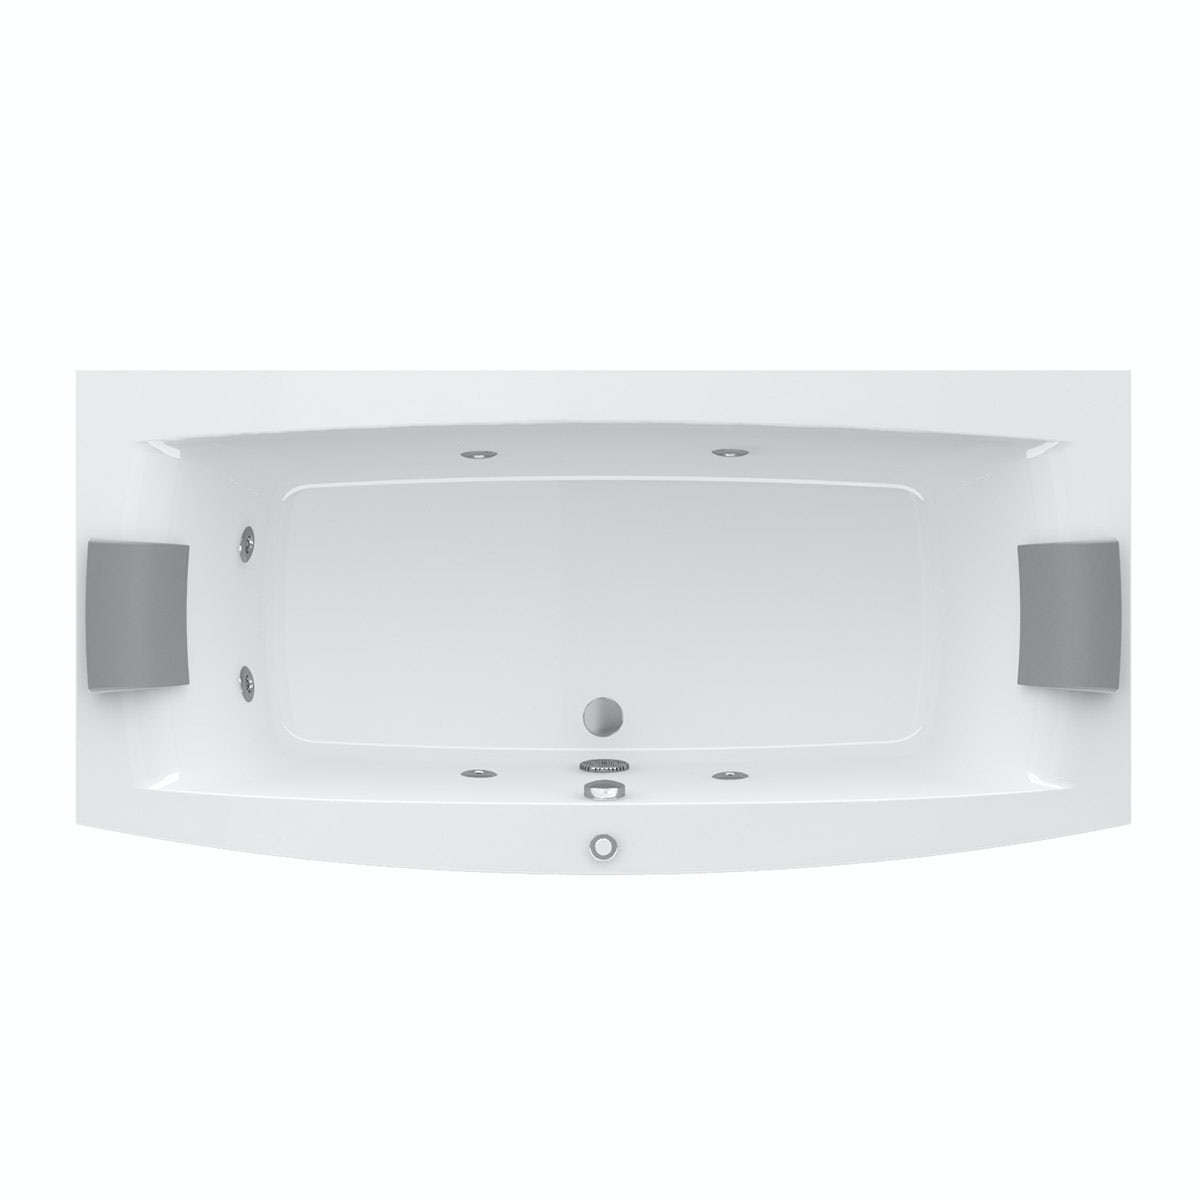 Excellent Jacuzzi The Essentials Double Ended Whirlpool Bath With Five  Moments To Remember From Whirlpool Hersteller Whirlpool Hersteller